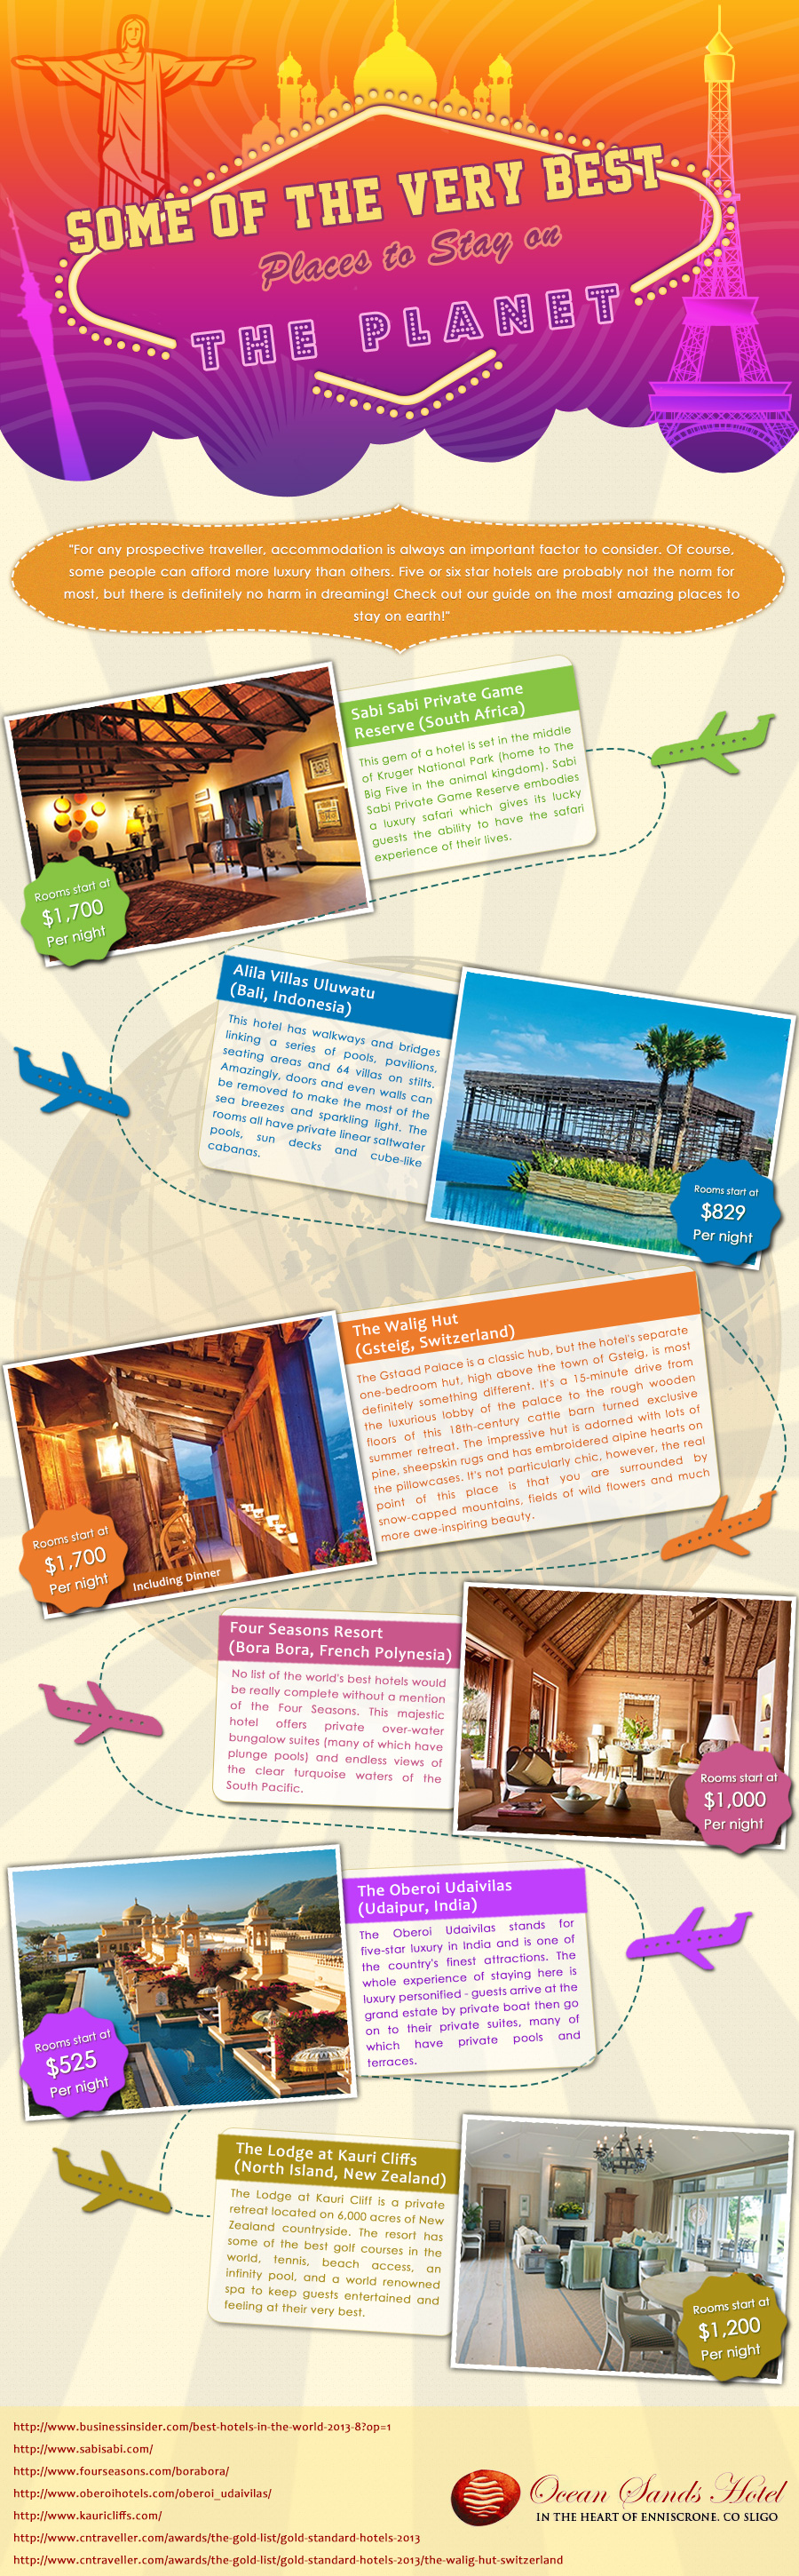 Best Places to Stay on the Planet - Infographic